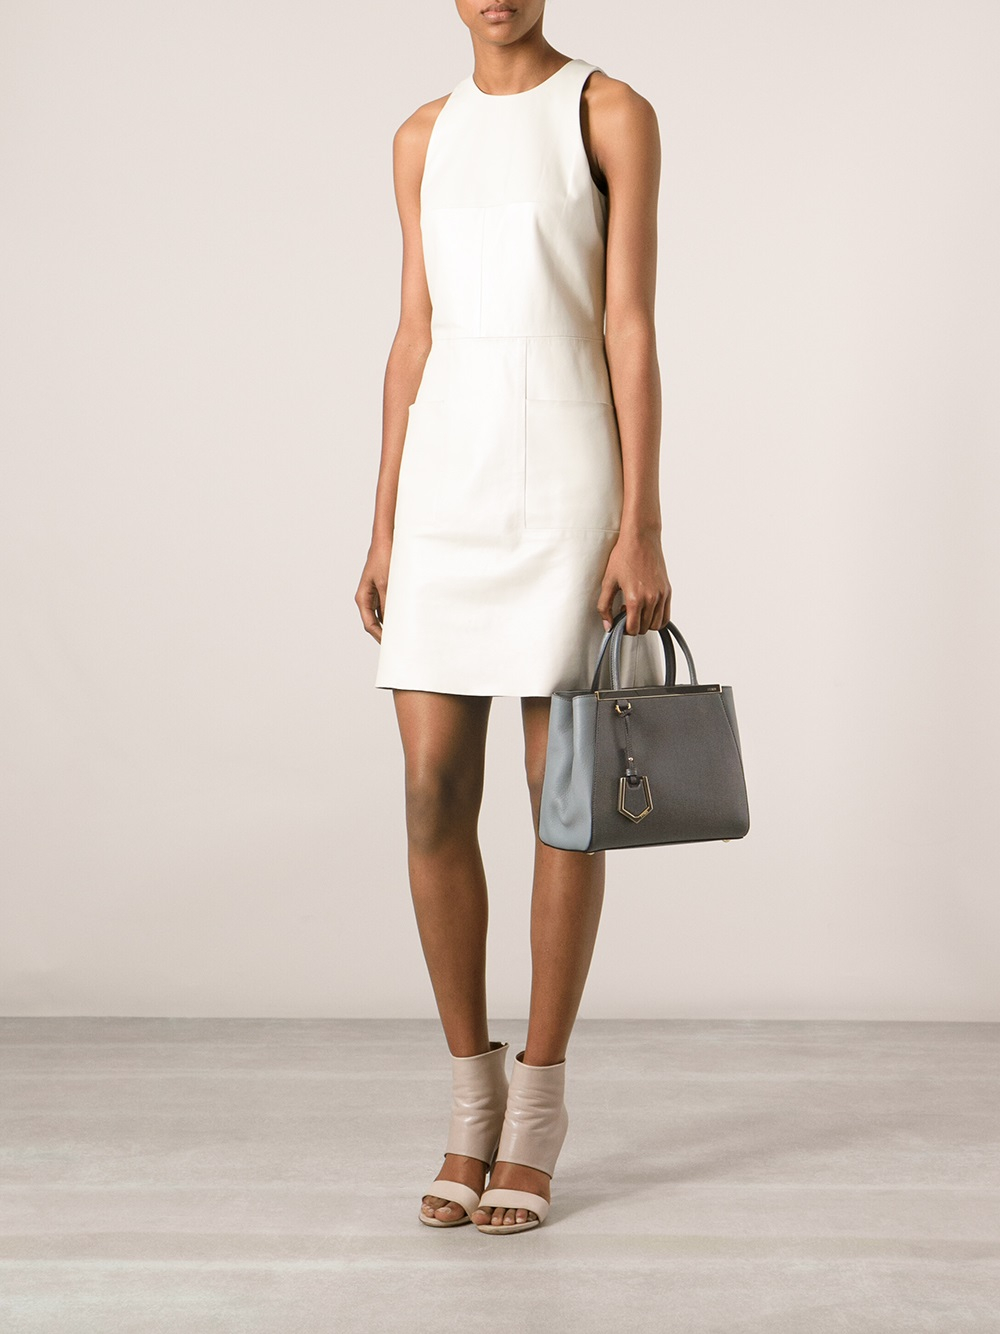 Lyst Fendi Small 2jours Tote In Gray